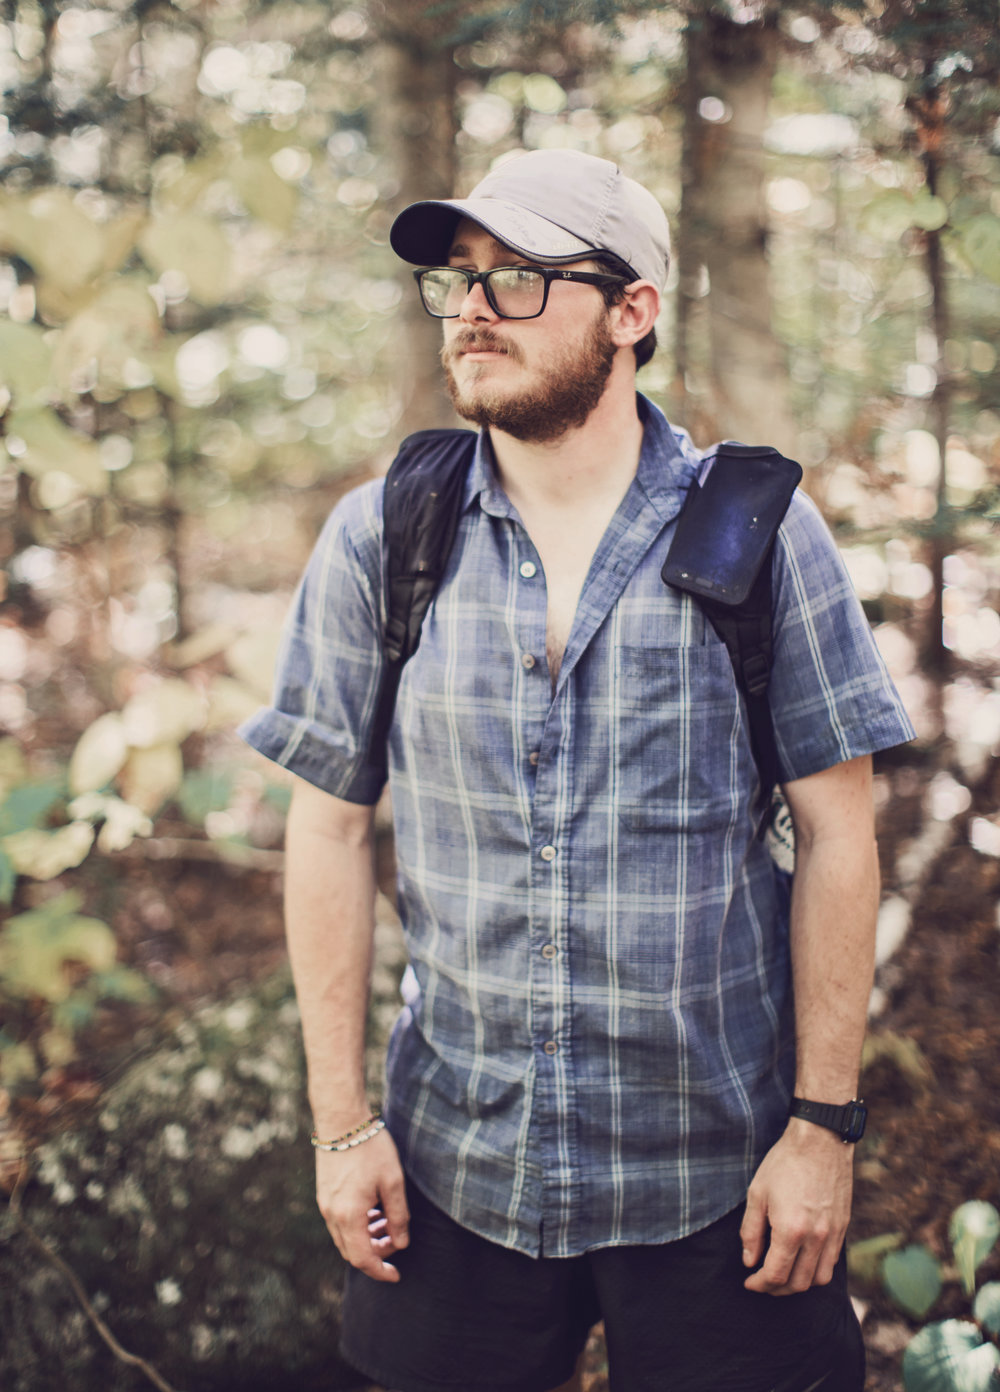 "This is Richard's second thru hike, he has previously done the Pacific Crest Trail in 2014. Recently he had felt the pull of long distance hiking so he decided to hike the AT and started on May 4th in Georgia… except nothing has gone to plan. While only 100 miles into his hike he got a call that his mom had passed away. When he got home he learned the details. She had been murdered while on her way home from Wal-Mart one night. After being home for several weeks and dealing with the after-death details, he realized that his mom wouldn't want him to sit around and be sad. On June 4th he decided to get back on the trail and keep hiking. He found to be the trail to be healing, and although he had to keep getting off to deal with issues surrounding his mom's death, Richard always looked forward to getting back on the trail. ""I've made a lot of really great friends, thru hiking is a great way to heal. At first it was really hard, I would sit at night and cry. I'd have nightmares and think of all the things I wish I could have said but didn't. But when all you have to do is hike all day, you get a lot of time to think. You don't have to work, you don't have stuff to do, your're forced to face the problems that come at you. I've heard so many stories of addicts and people in bad relationships hiking and using the trail as a way to heal. Its not a cure all but it definitely helps. I'm thankful to be out here."""